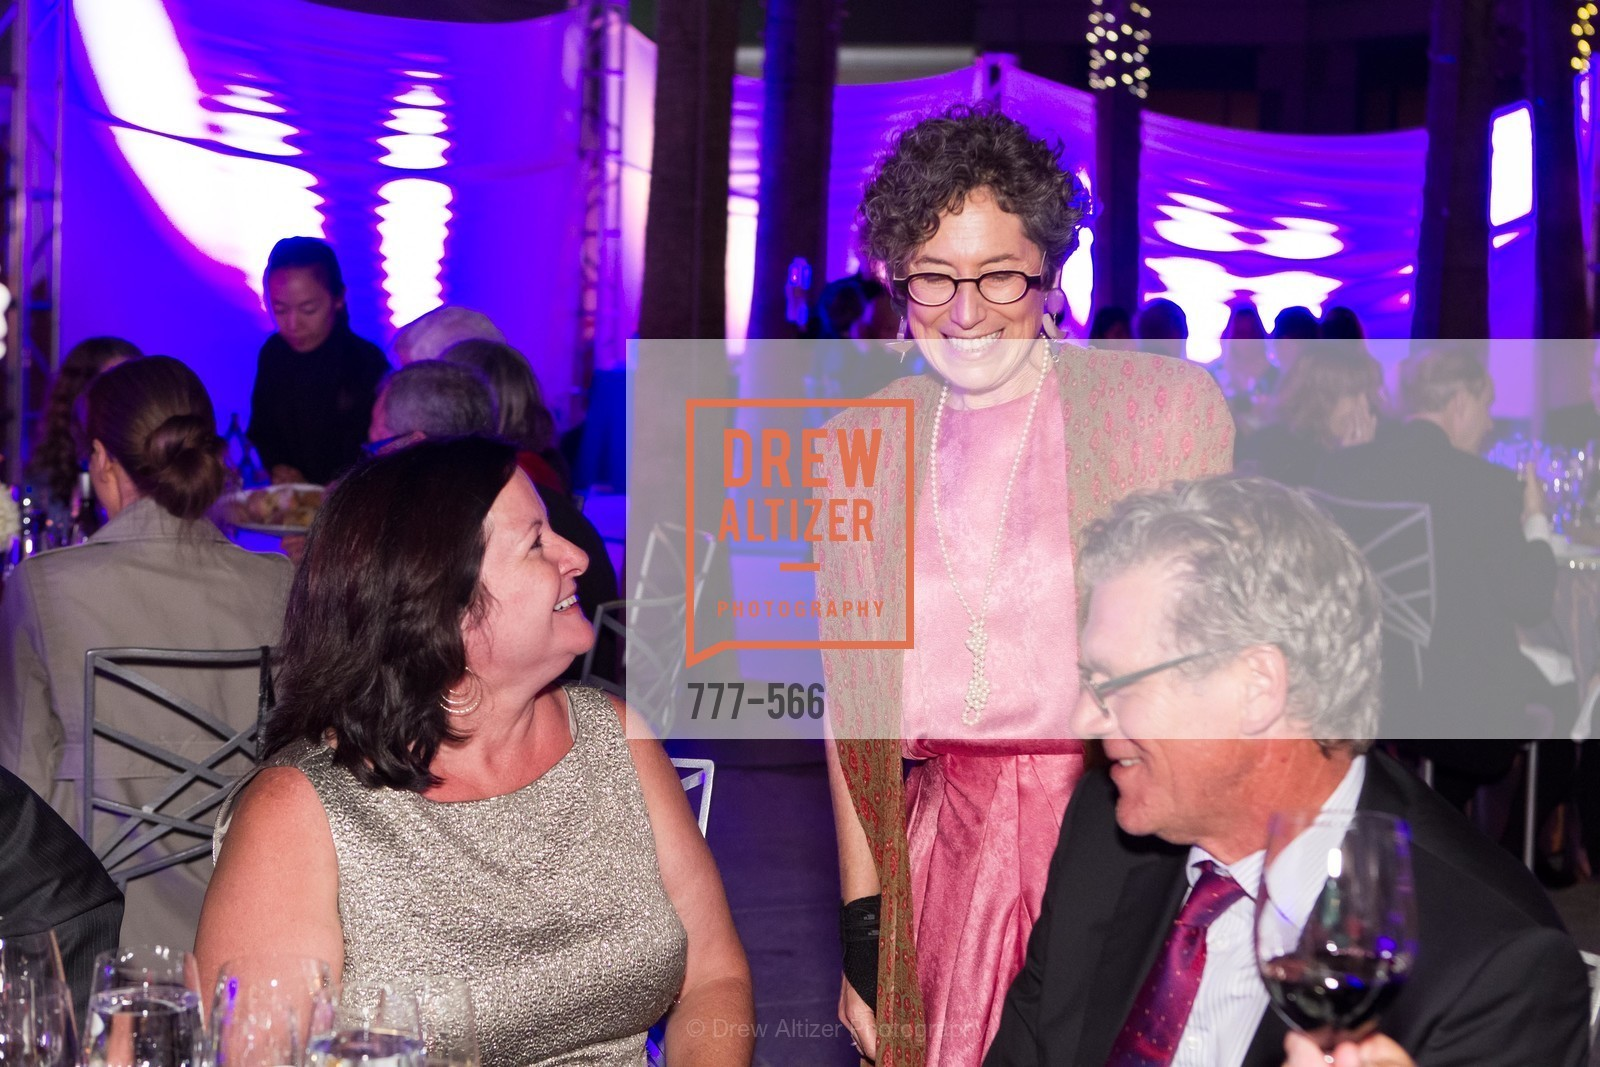 Eileen Fernandes, Susan Krane, Al Fernandes, SAN JOSE MUSEUM OF ART'S Spectrum Gala - 45th Anniversary, US, September 13th, 2014,Drew Altizer, Drew Altizer Photography, full-service agency, private events, San Francisco photographer, photographer california